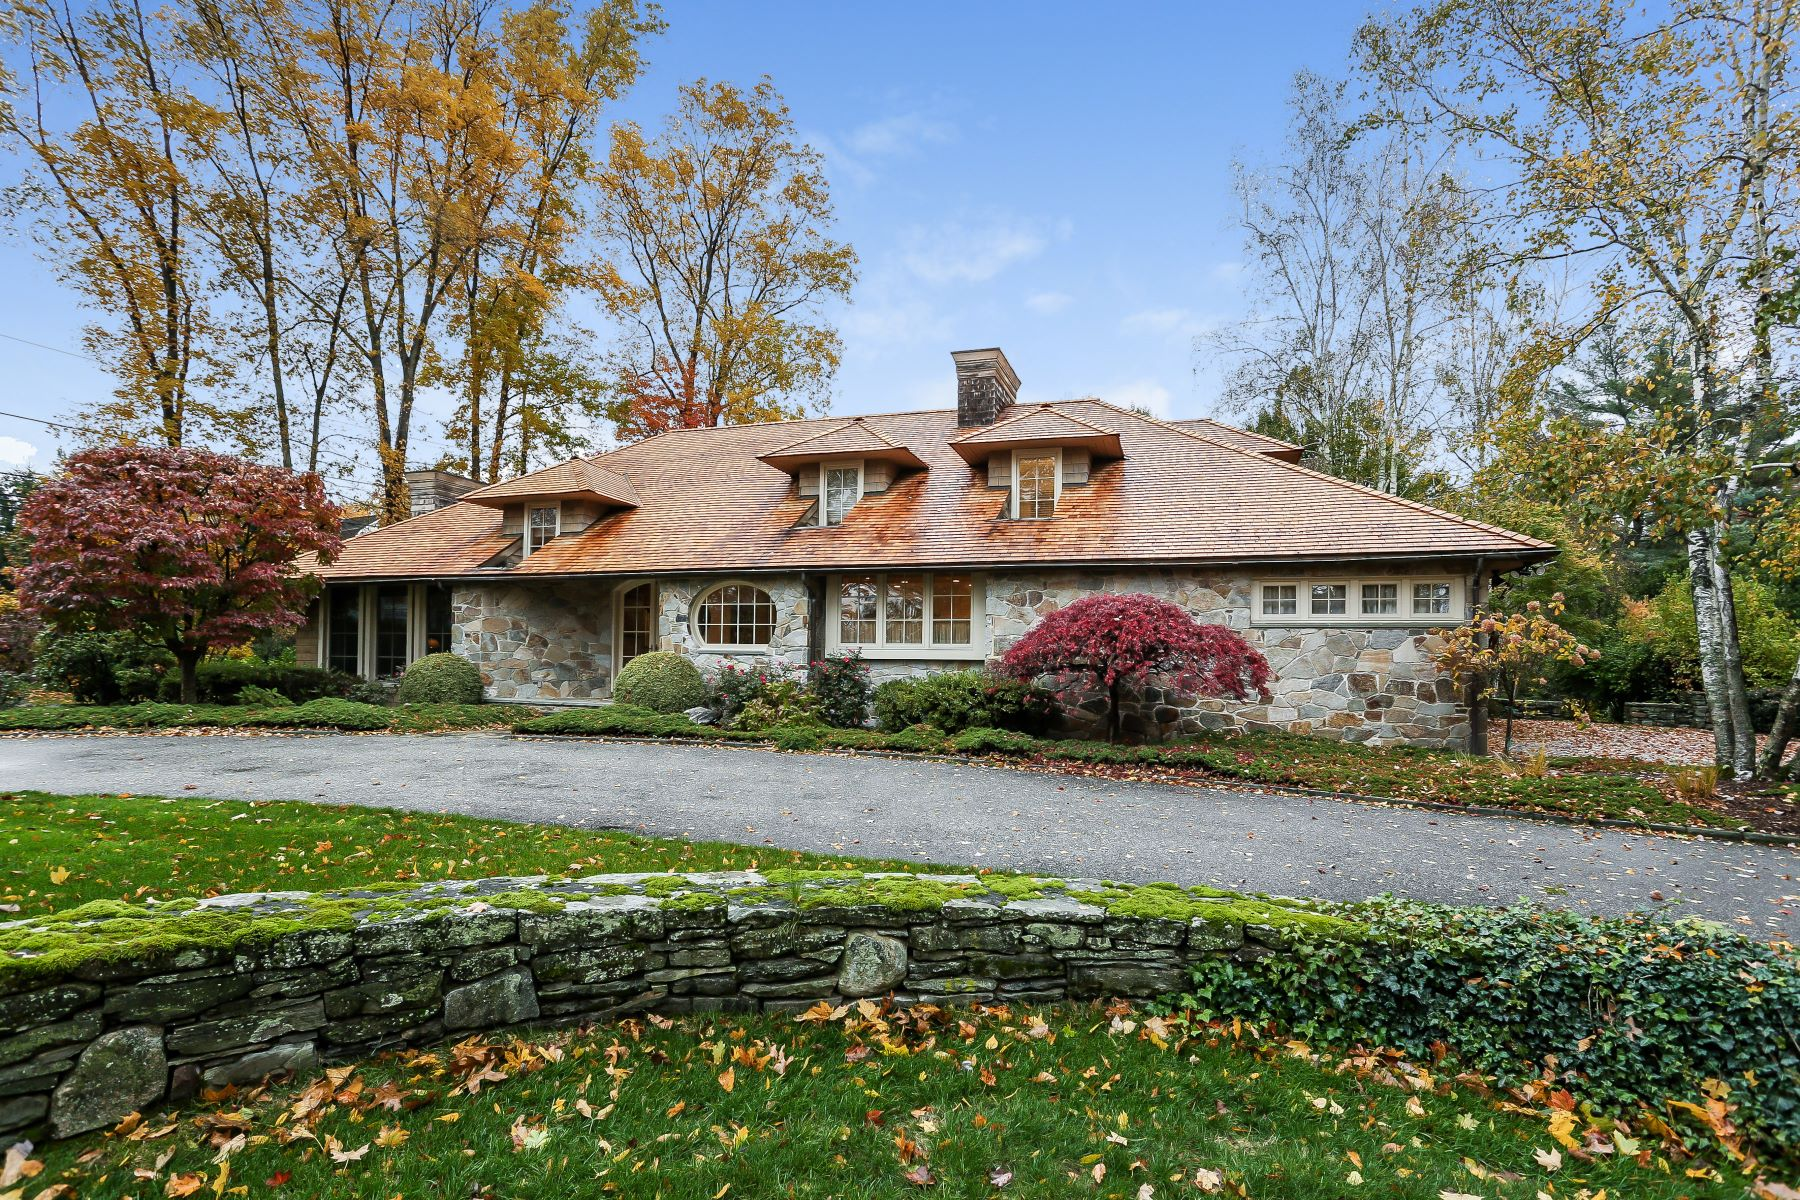 Single Family Homes for Sale at Beautiful English Country Home 991 Pequot Avenue Fairfield, Connecticut 06890 United States